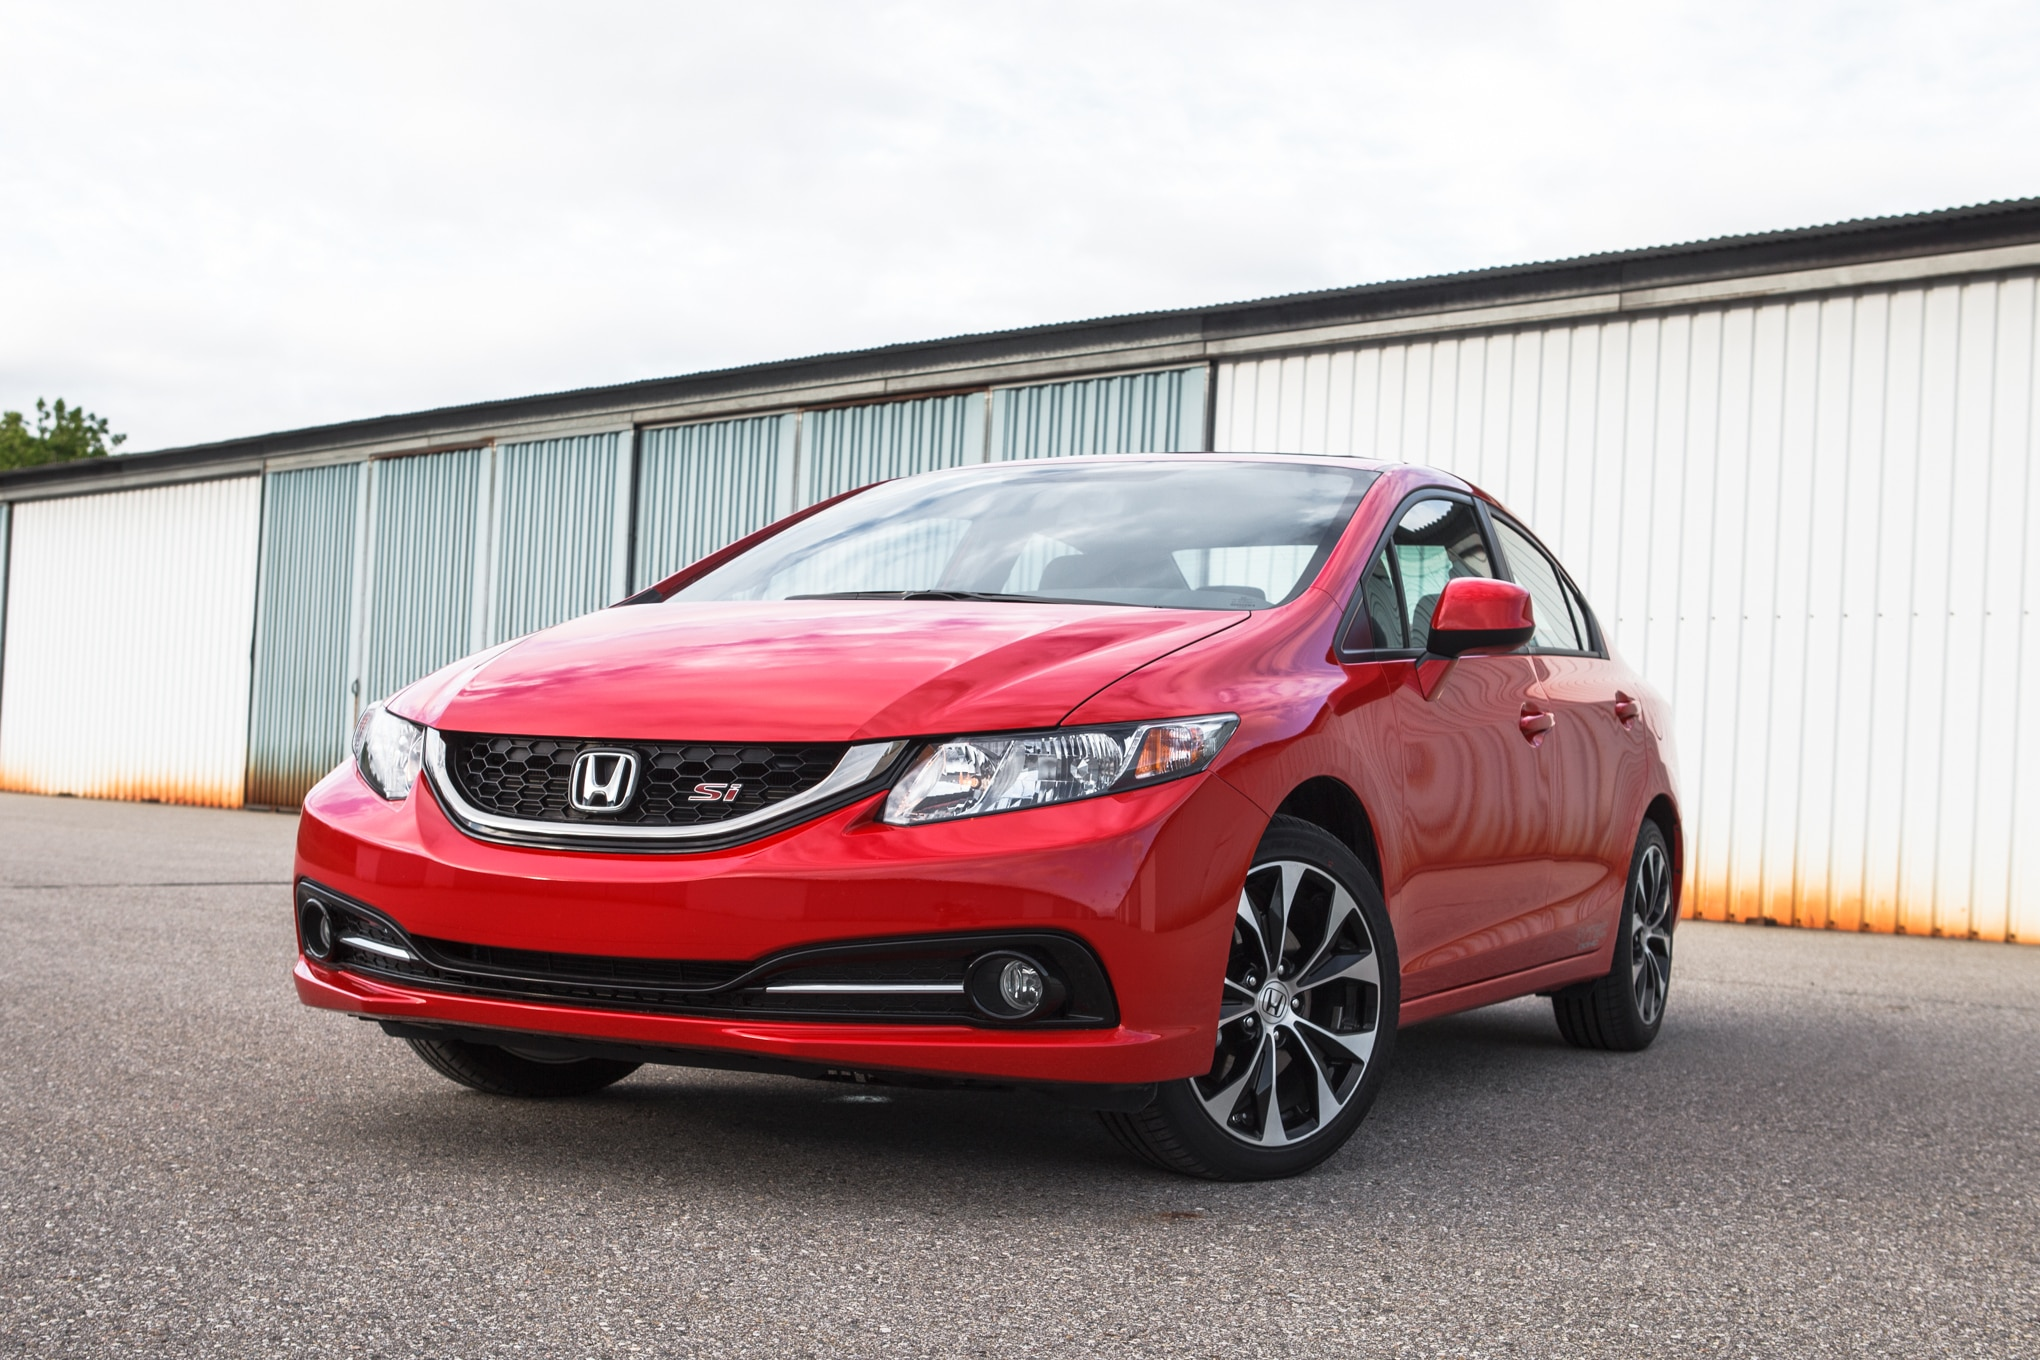 2013 Honda Civic Si Front Left View 3